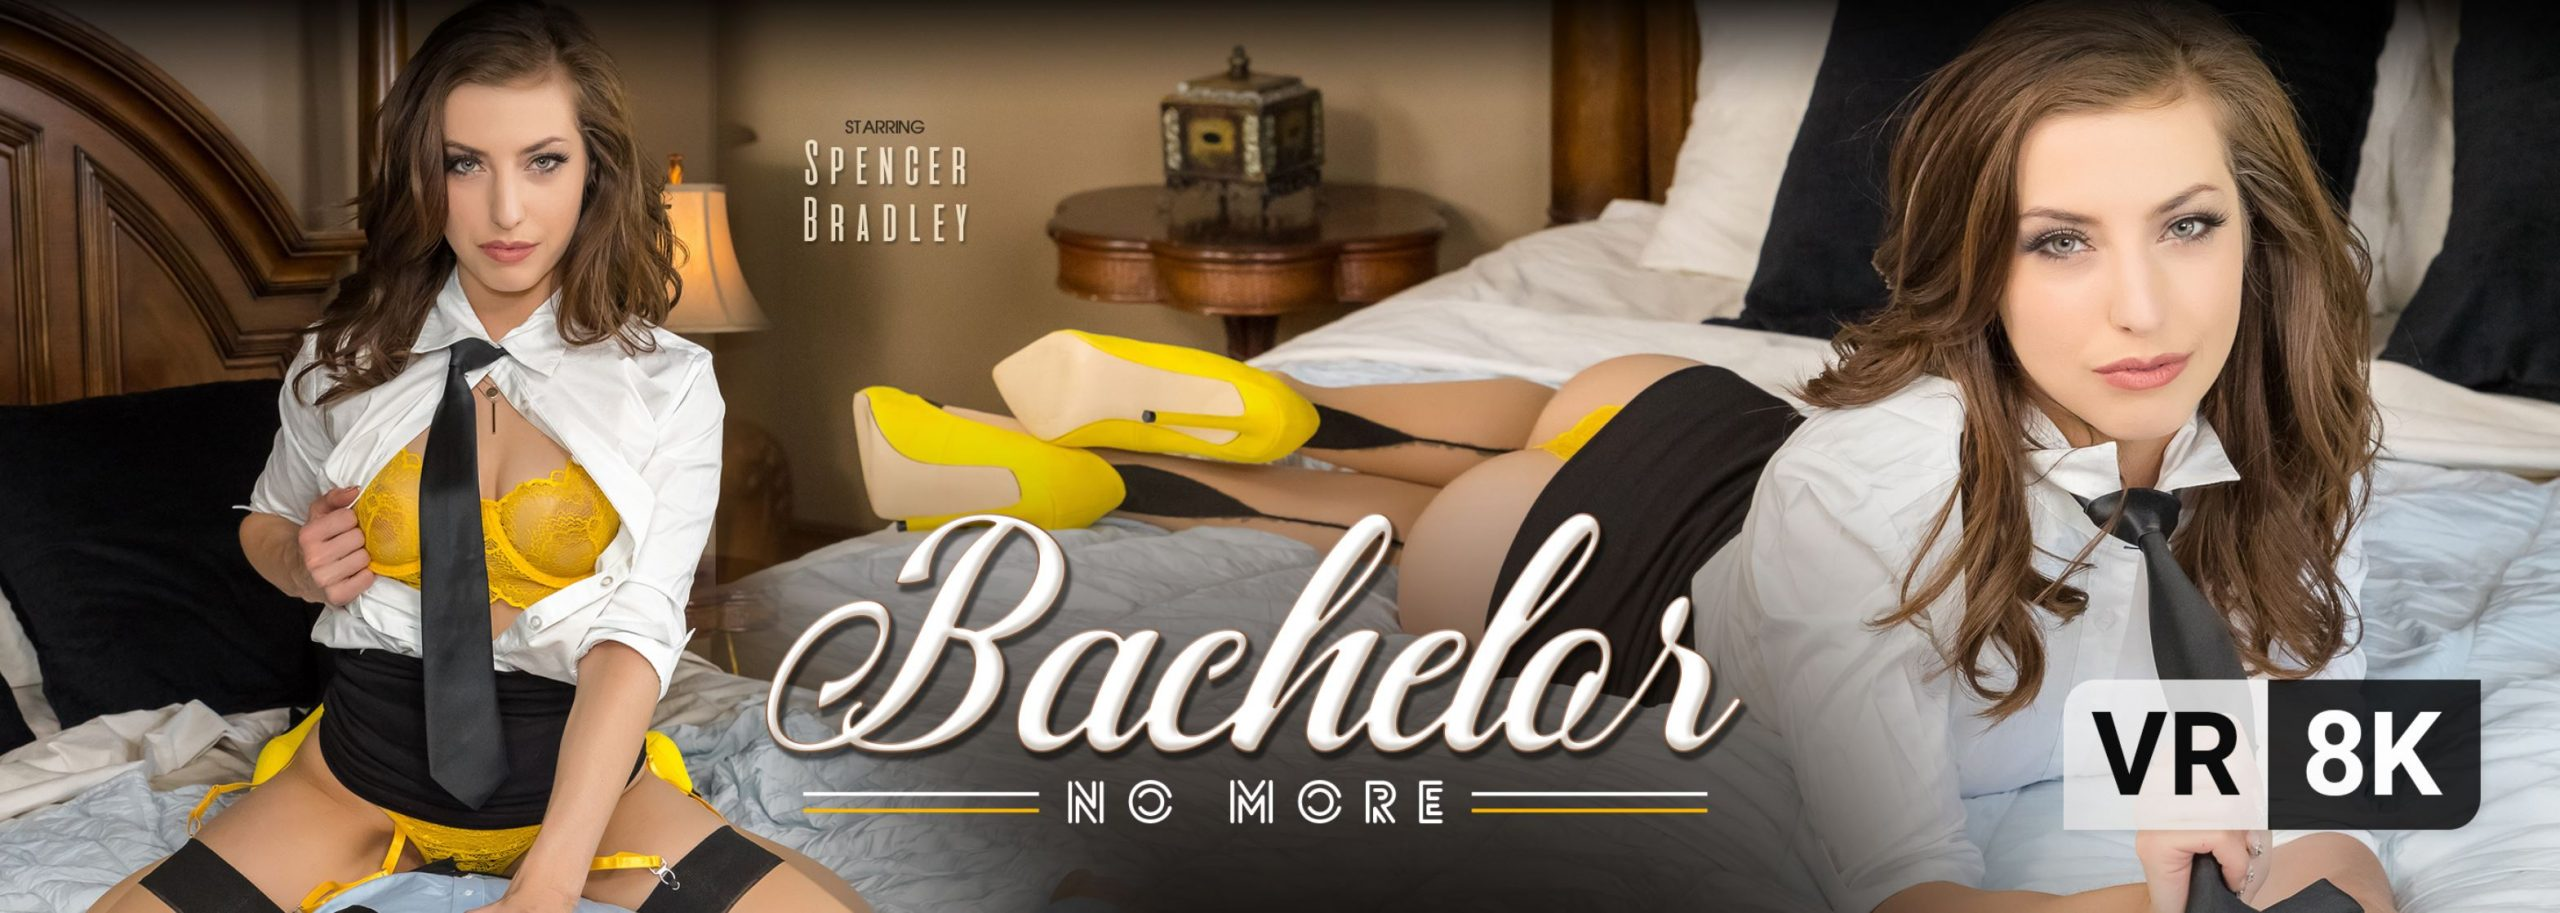 VR Bangers 8K Virtual Reality Porn - Bachelor No More ft. Spencer Bradley